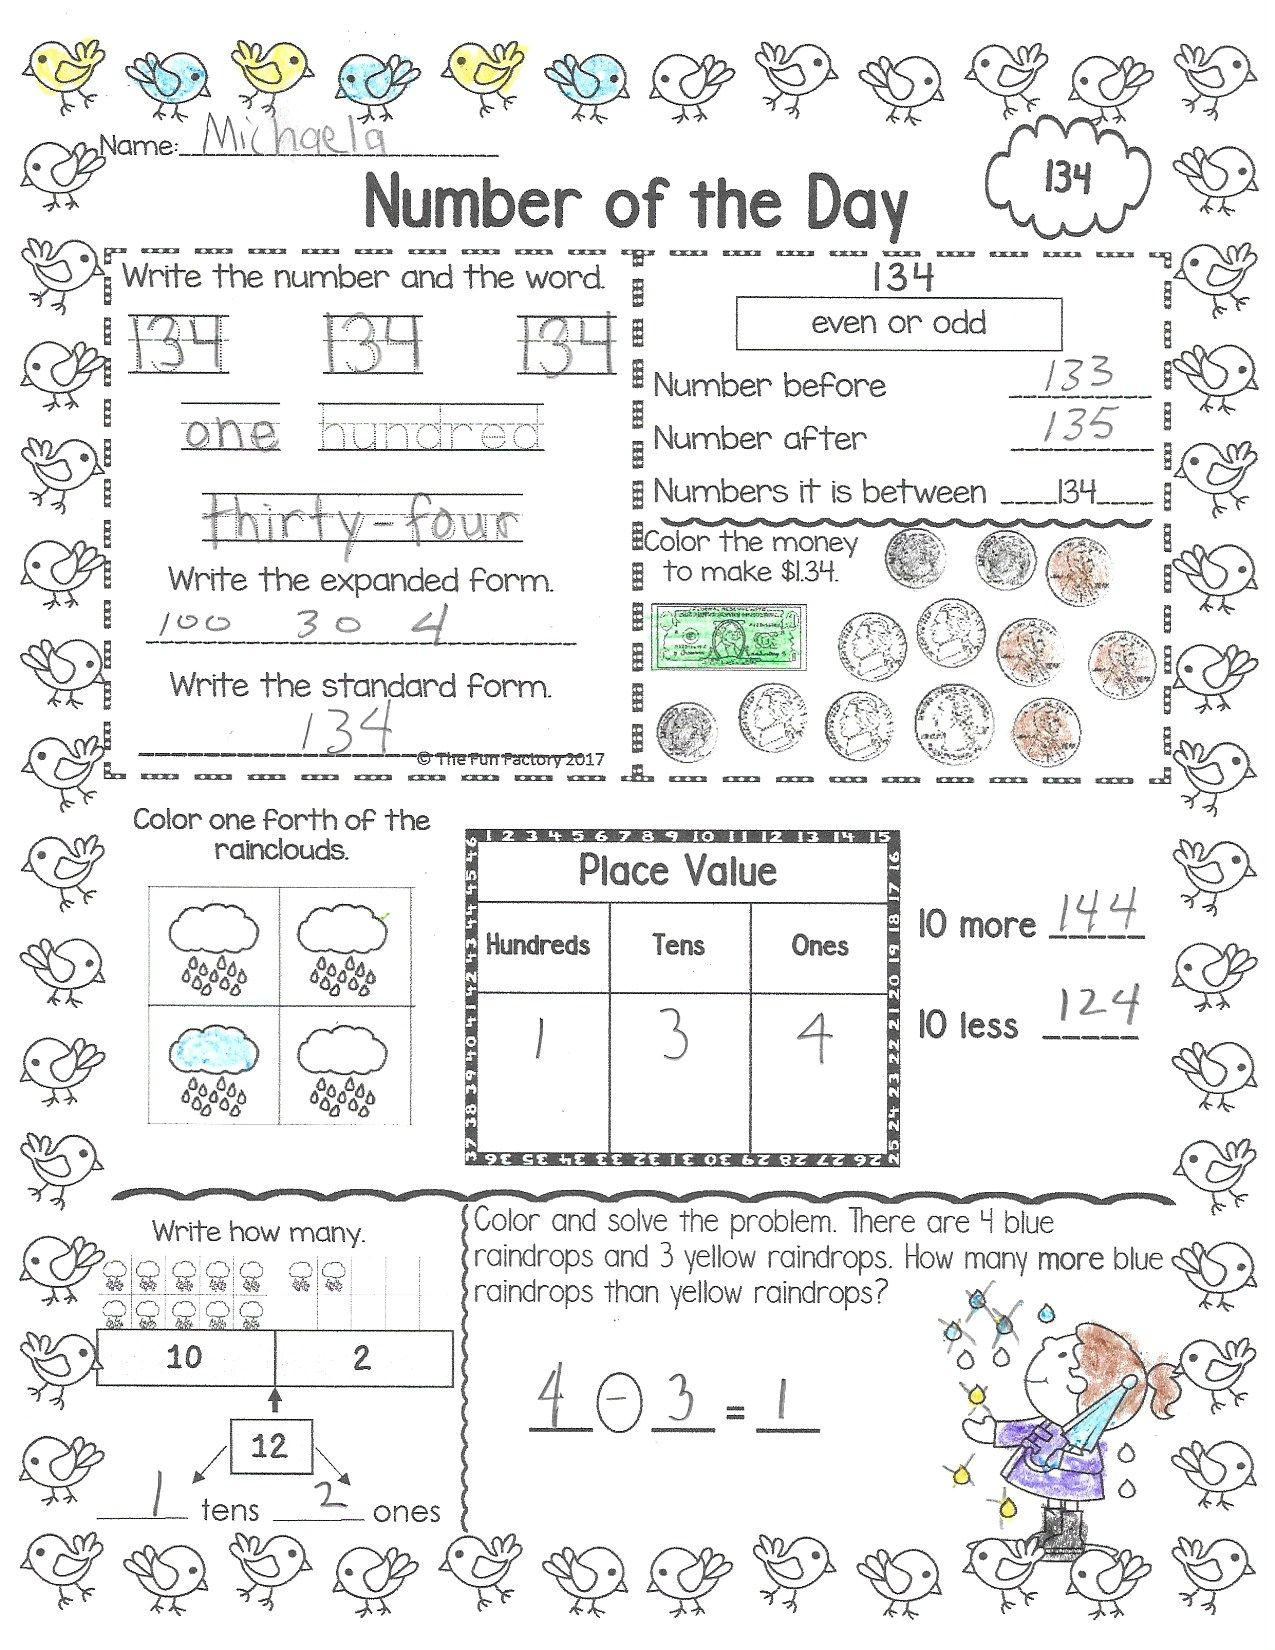 Math Worksheets First Grade Number Of The Day Math Worksheets First Grade Classroom 1st Grade Worksheets [ 1650 x 1275 Pixel ]